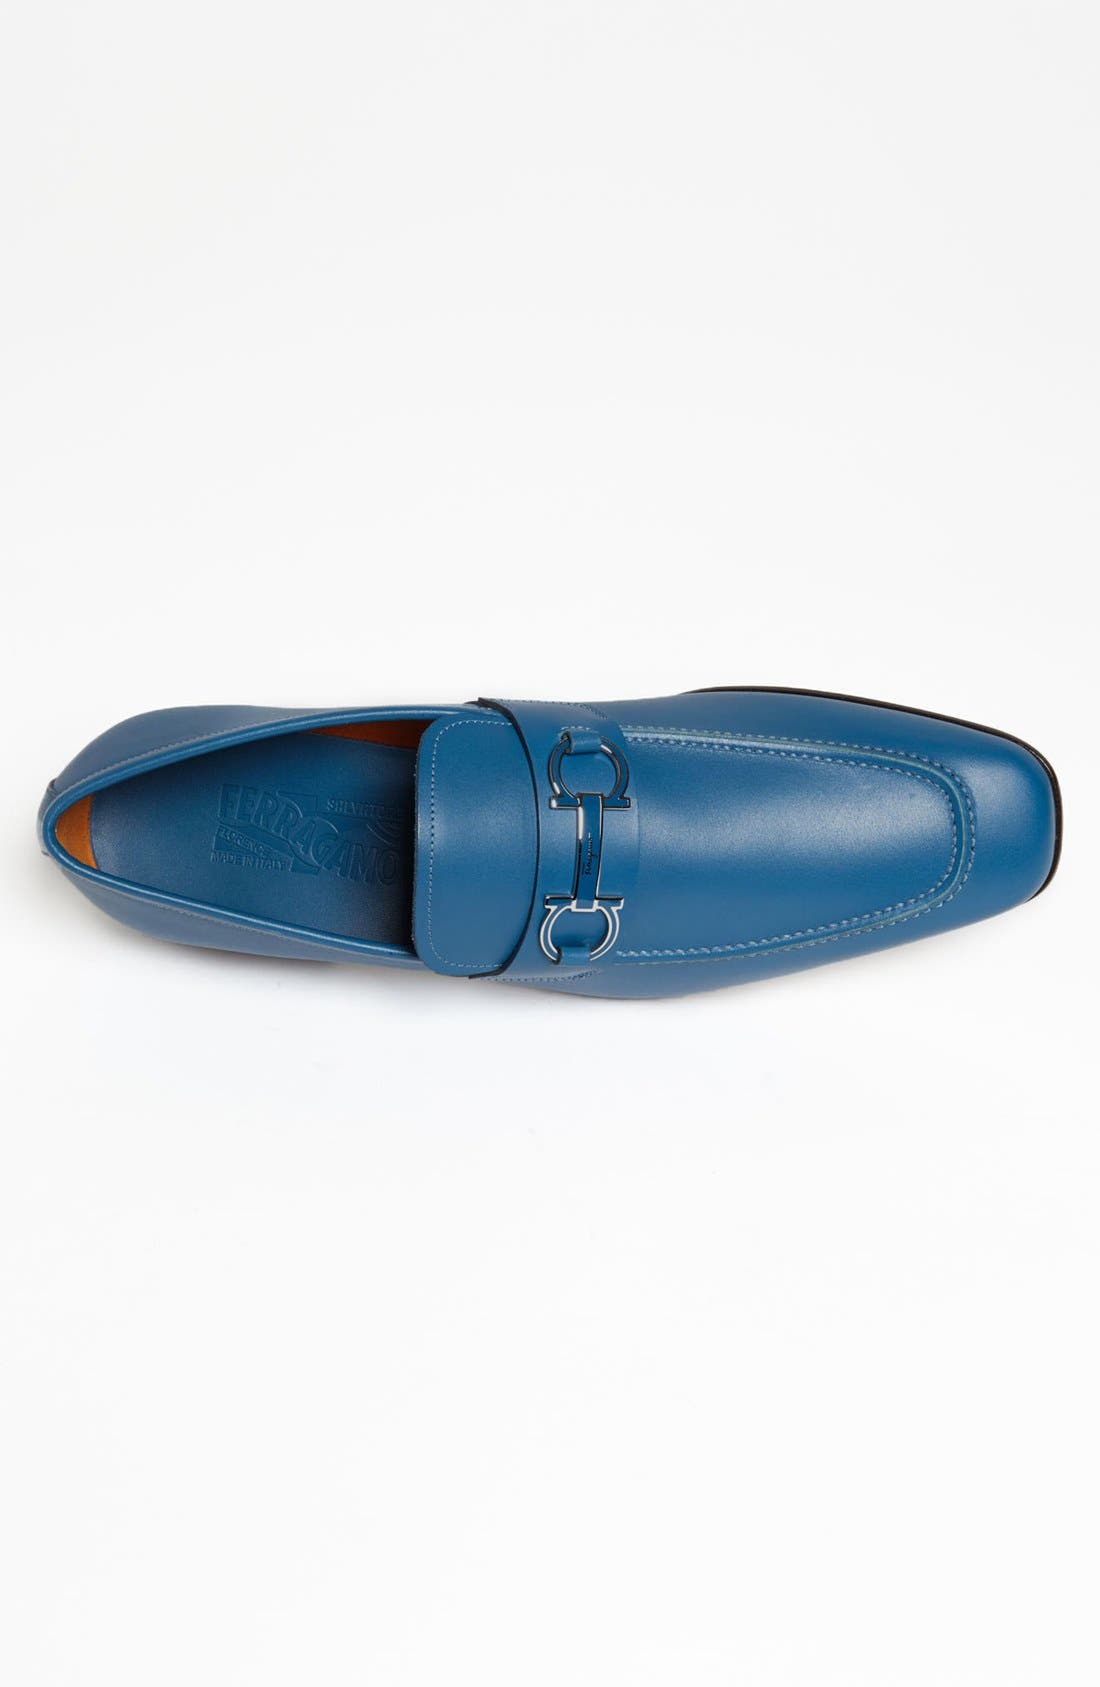 Alternate Image 3  - Salvatore Ferragamo 'Tribute' Bit Loafer